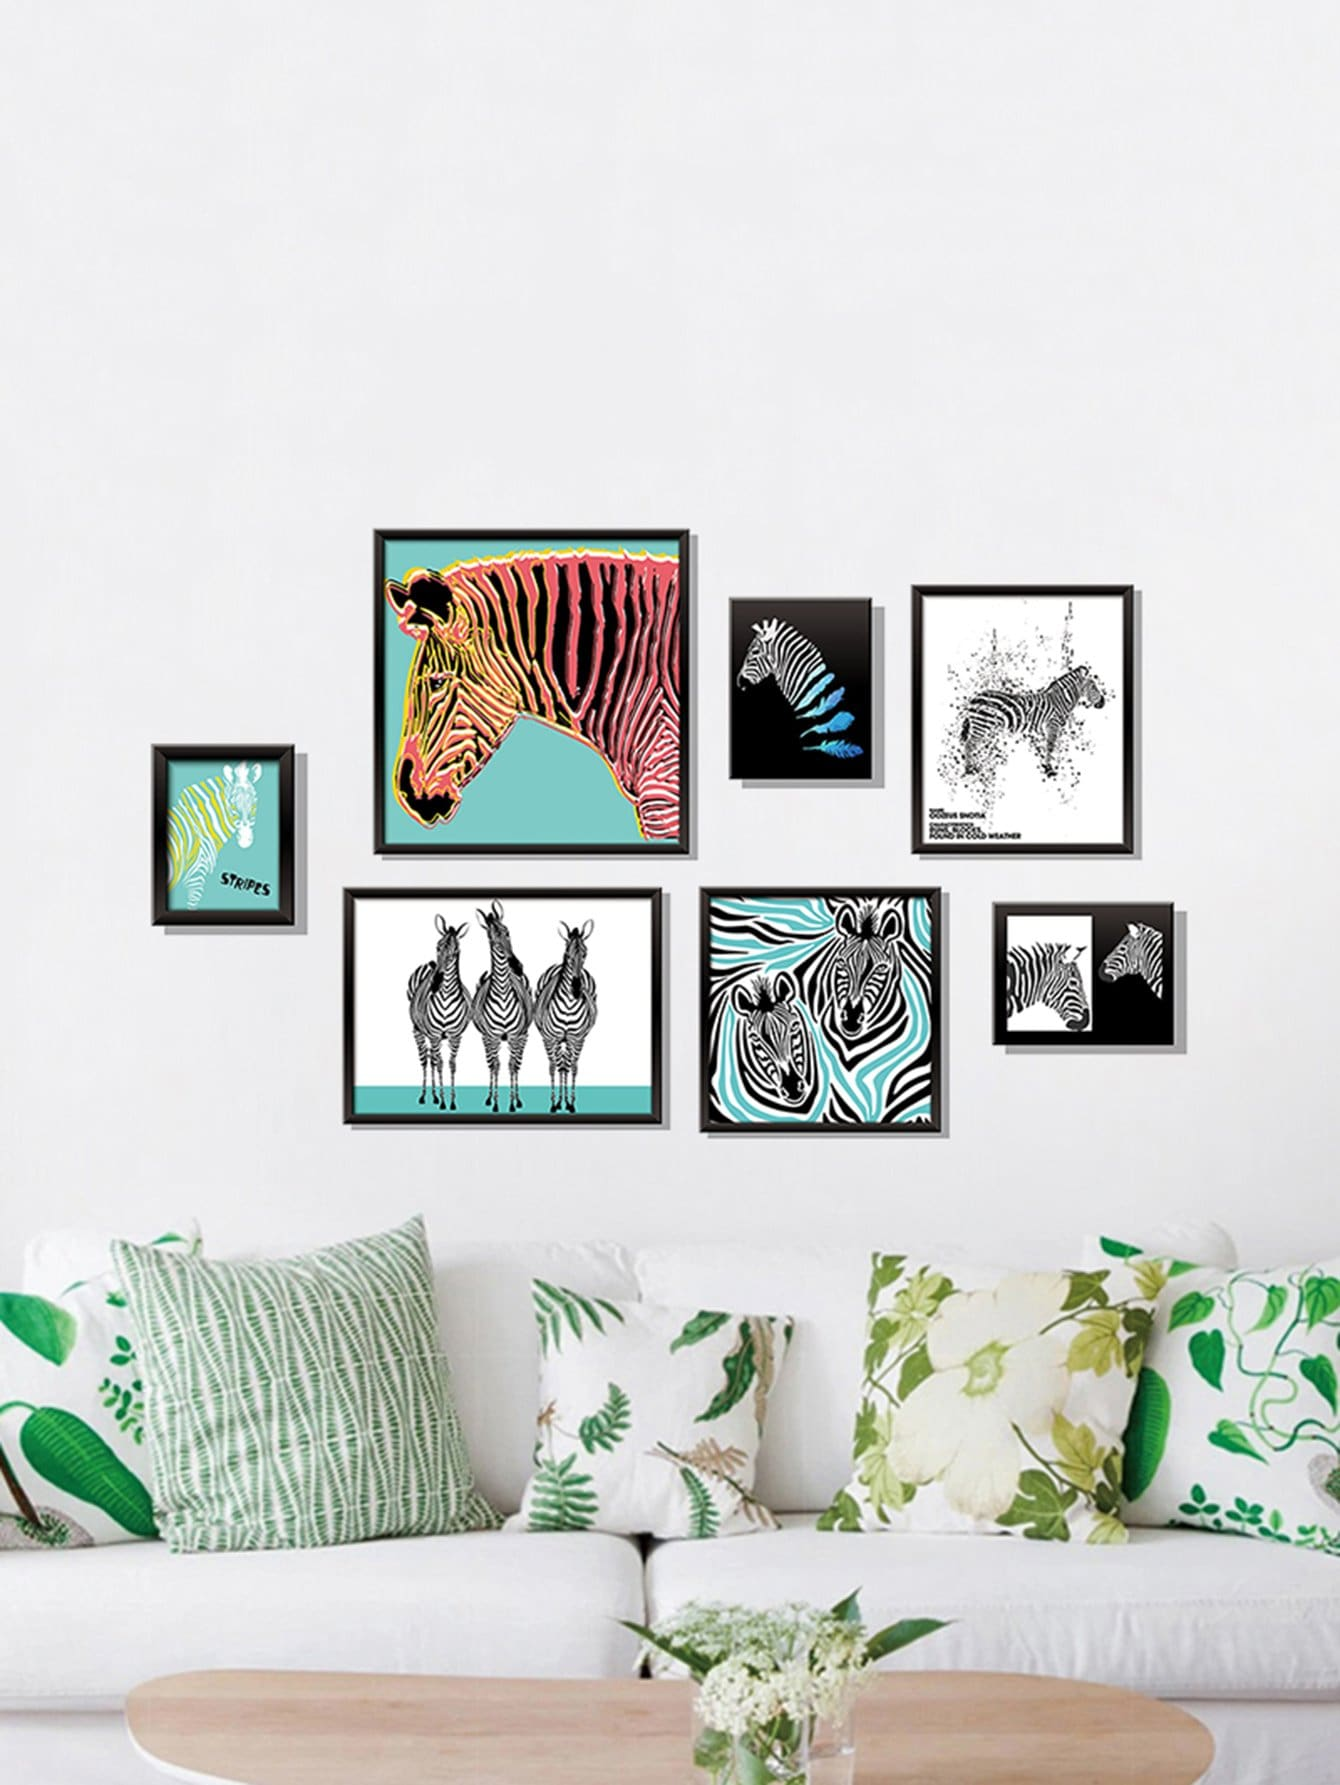 3D Zebra Print With Fake Frame Wall Stickers fashion letters and zebra pattern removeable wall stickers for bedroom decor